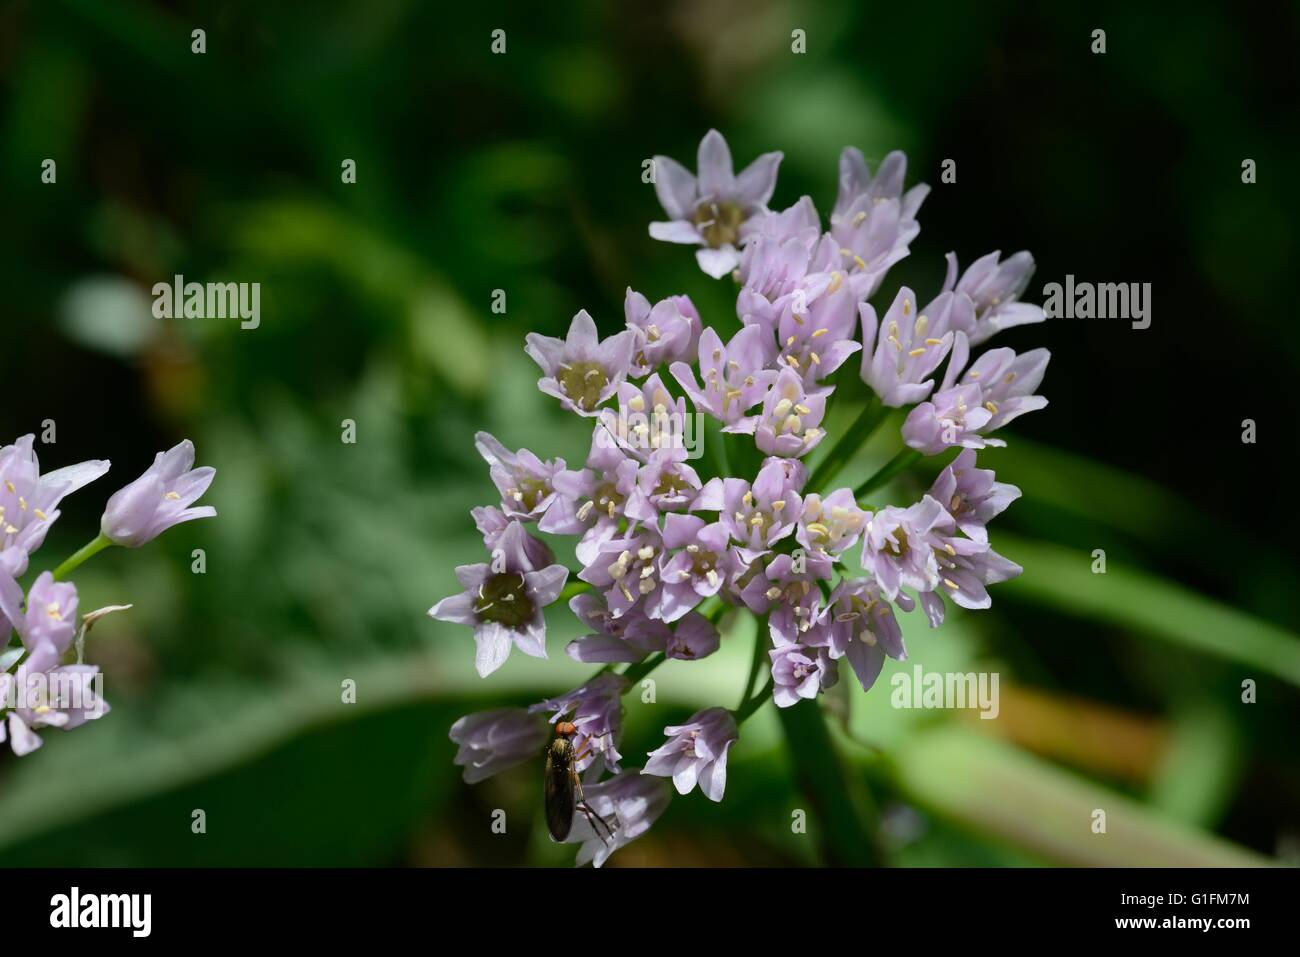 Allium spp. - Stock Image